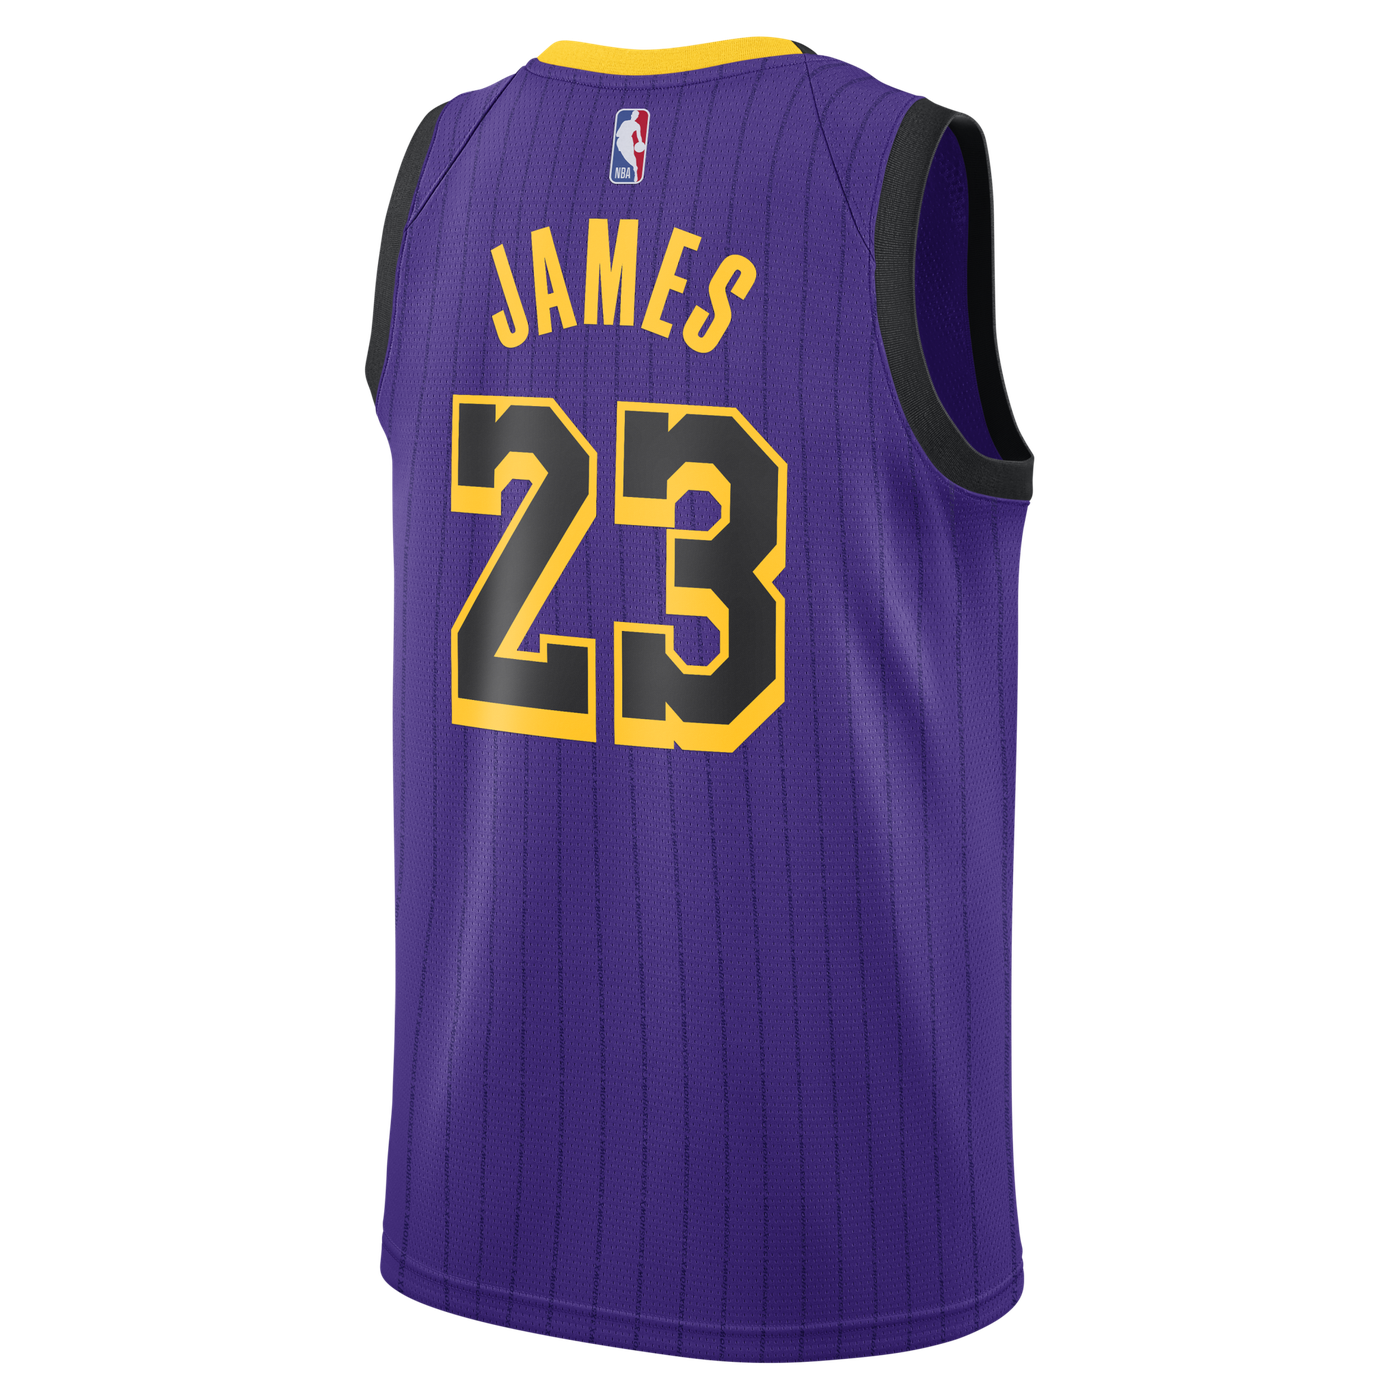 Nba City Edition The Jerseys T Shirts And Merch You Can Buy Online